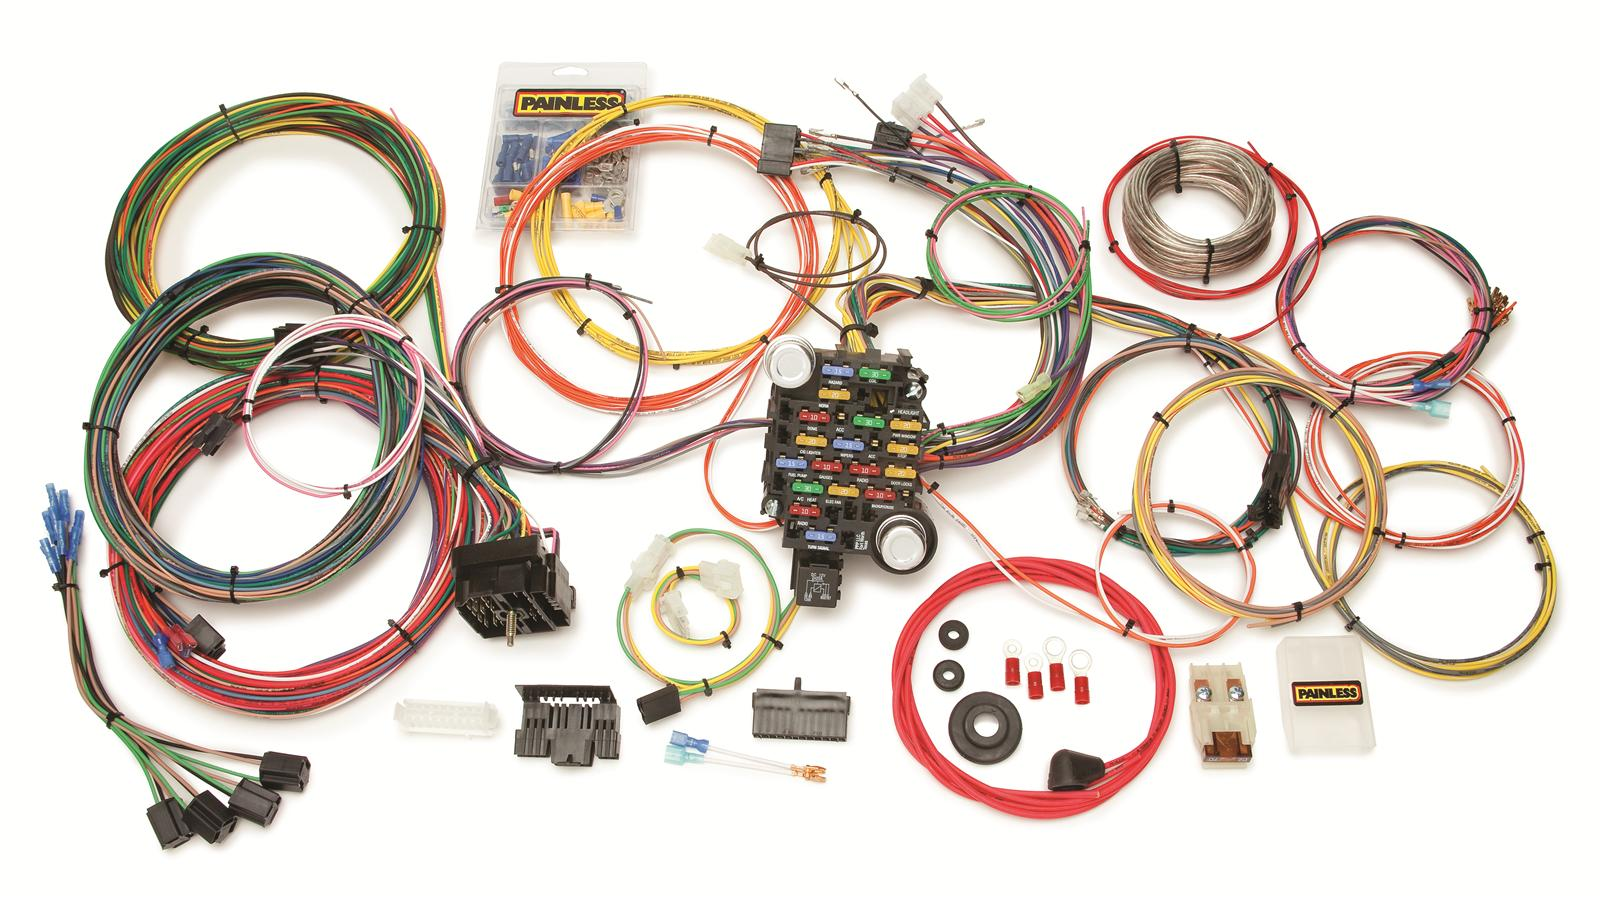 Jensen Wiring Harness For Silverado Library Gm Car Stereo Diagram Painless Performance Gmc Chevy Truck Harnesses 10205 Free Shipping On Orders Over 49 At